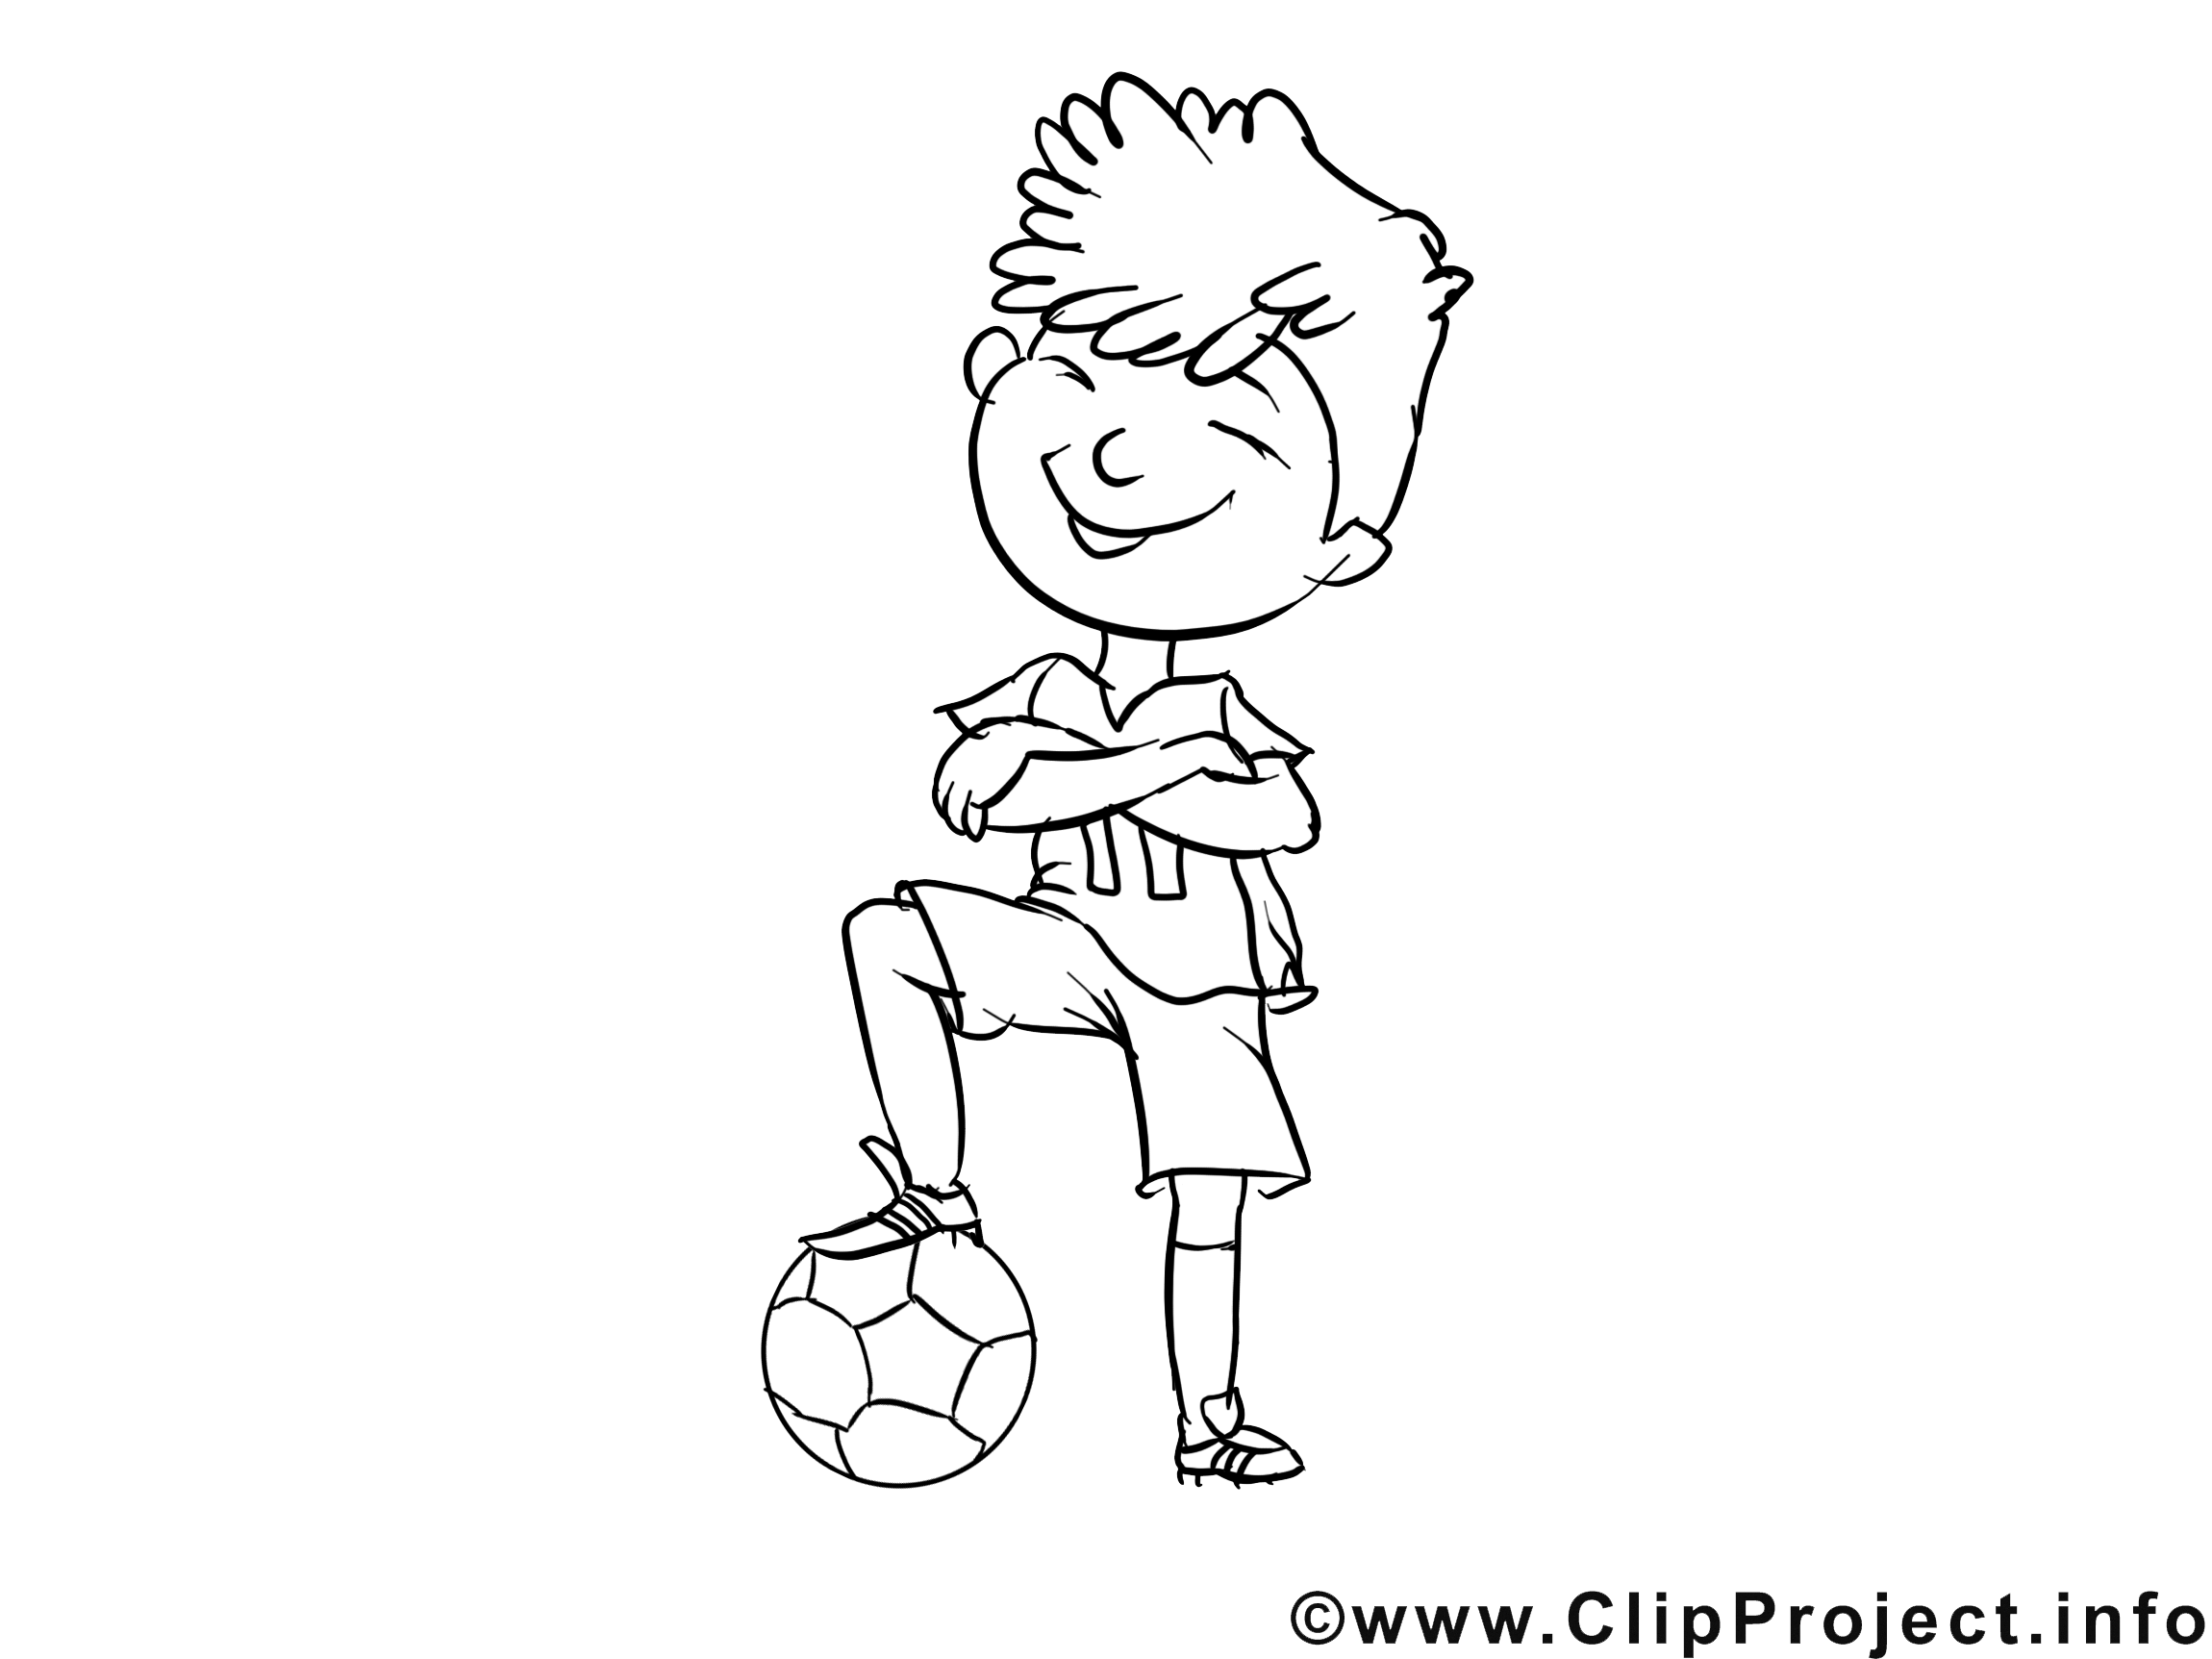 Footballeur illustration – Coloriage métiers cliparts